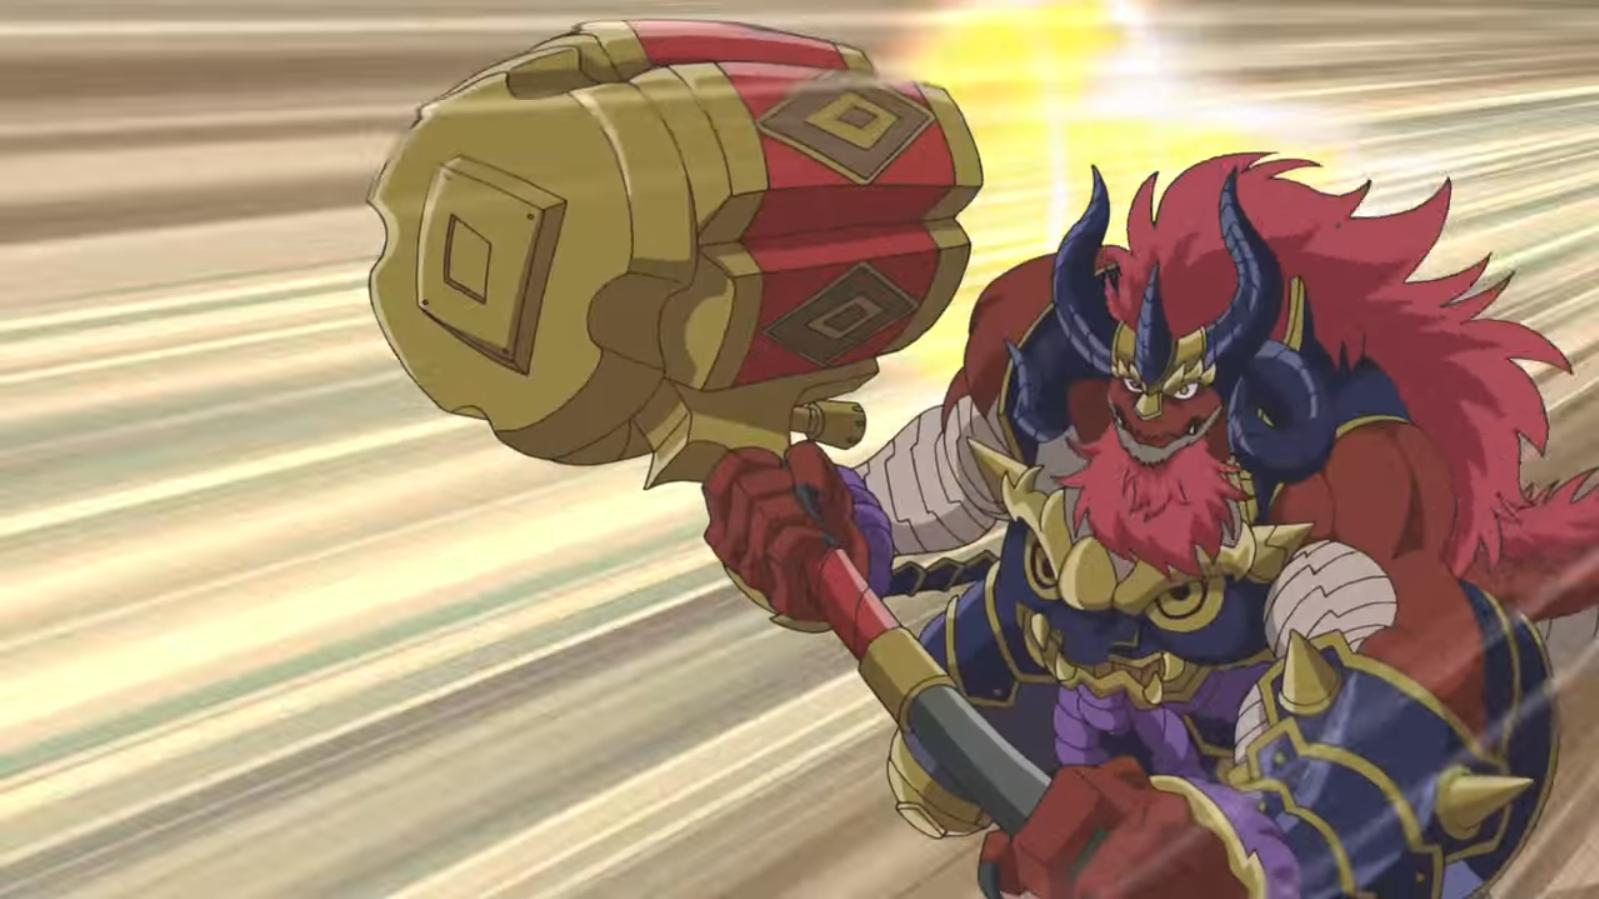 Fifth Omni Cavalry Dragon, Explosive Hammer Fuad (character)